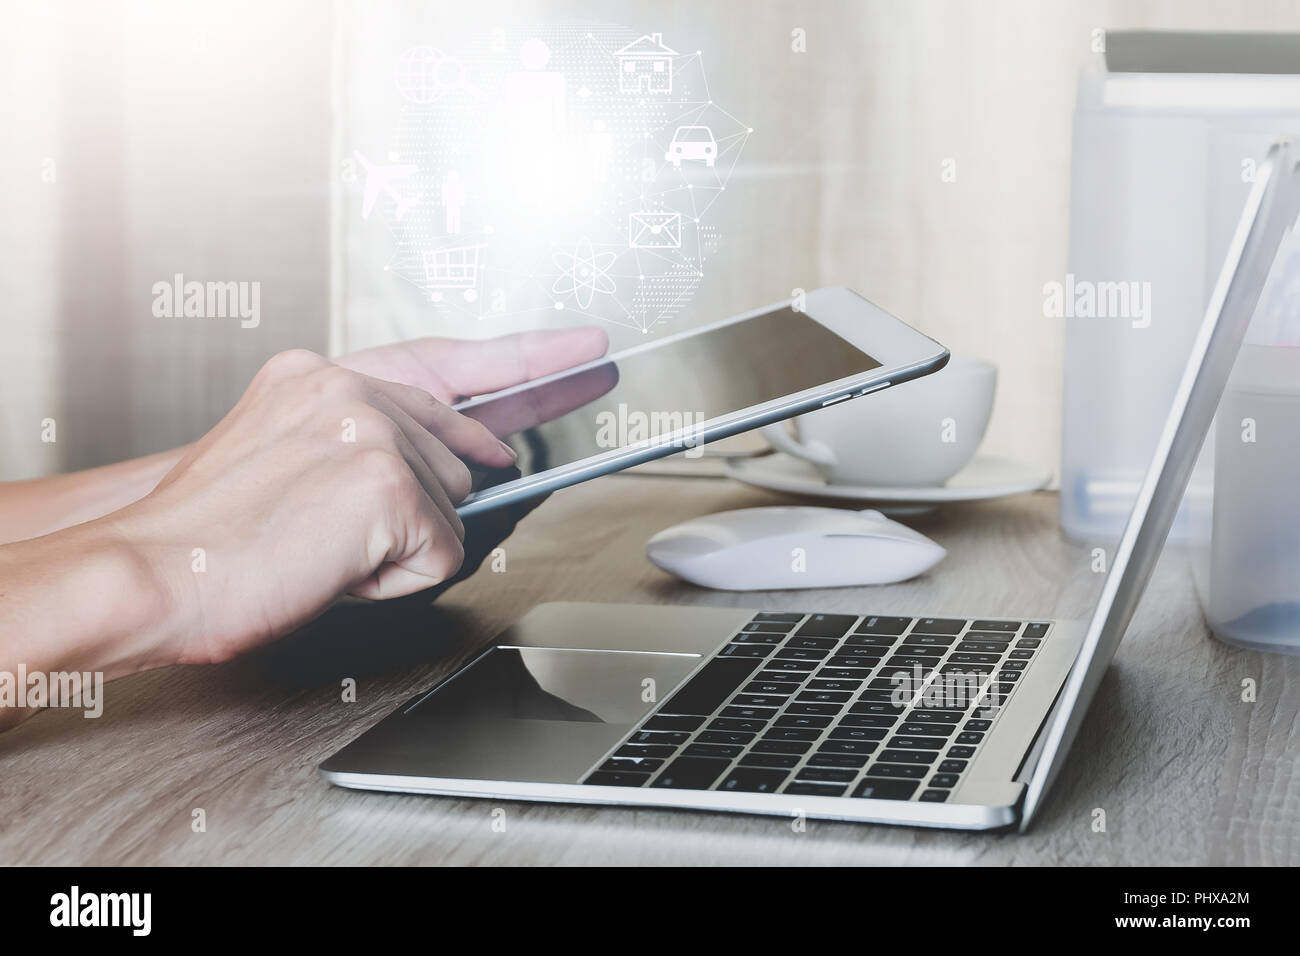 Internet of things concept,Man using tablet with modern technologies business and technology concept - Stock Image